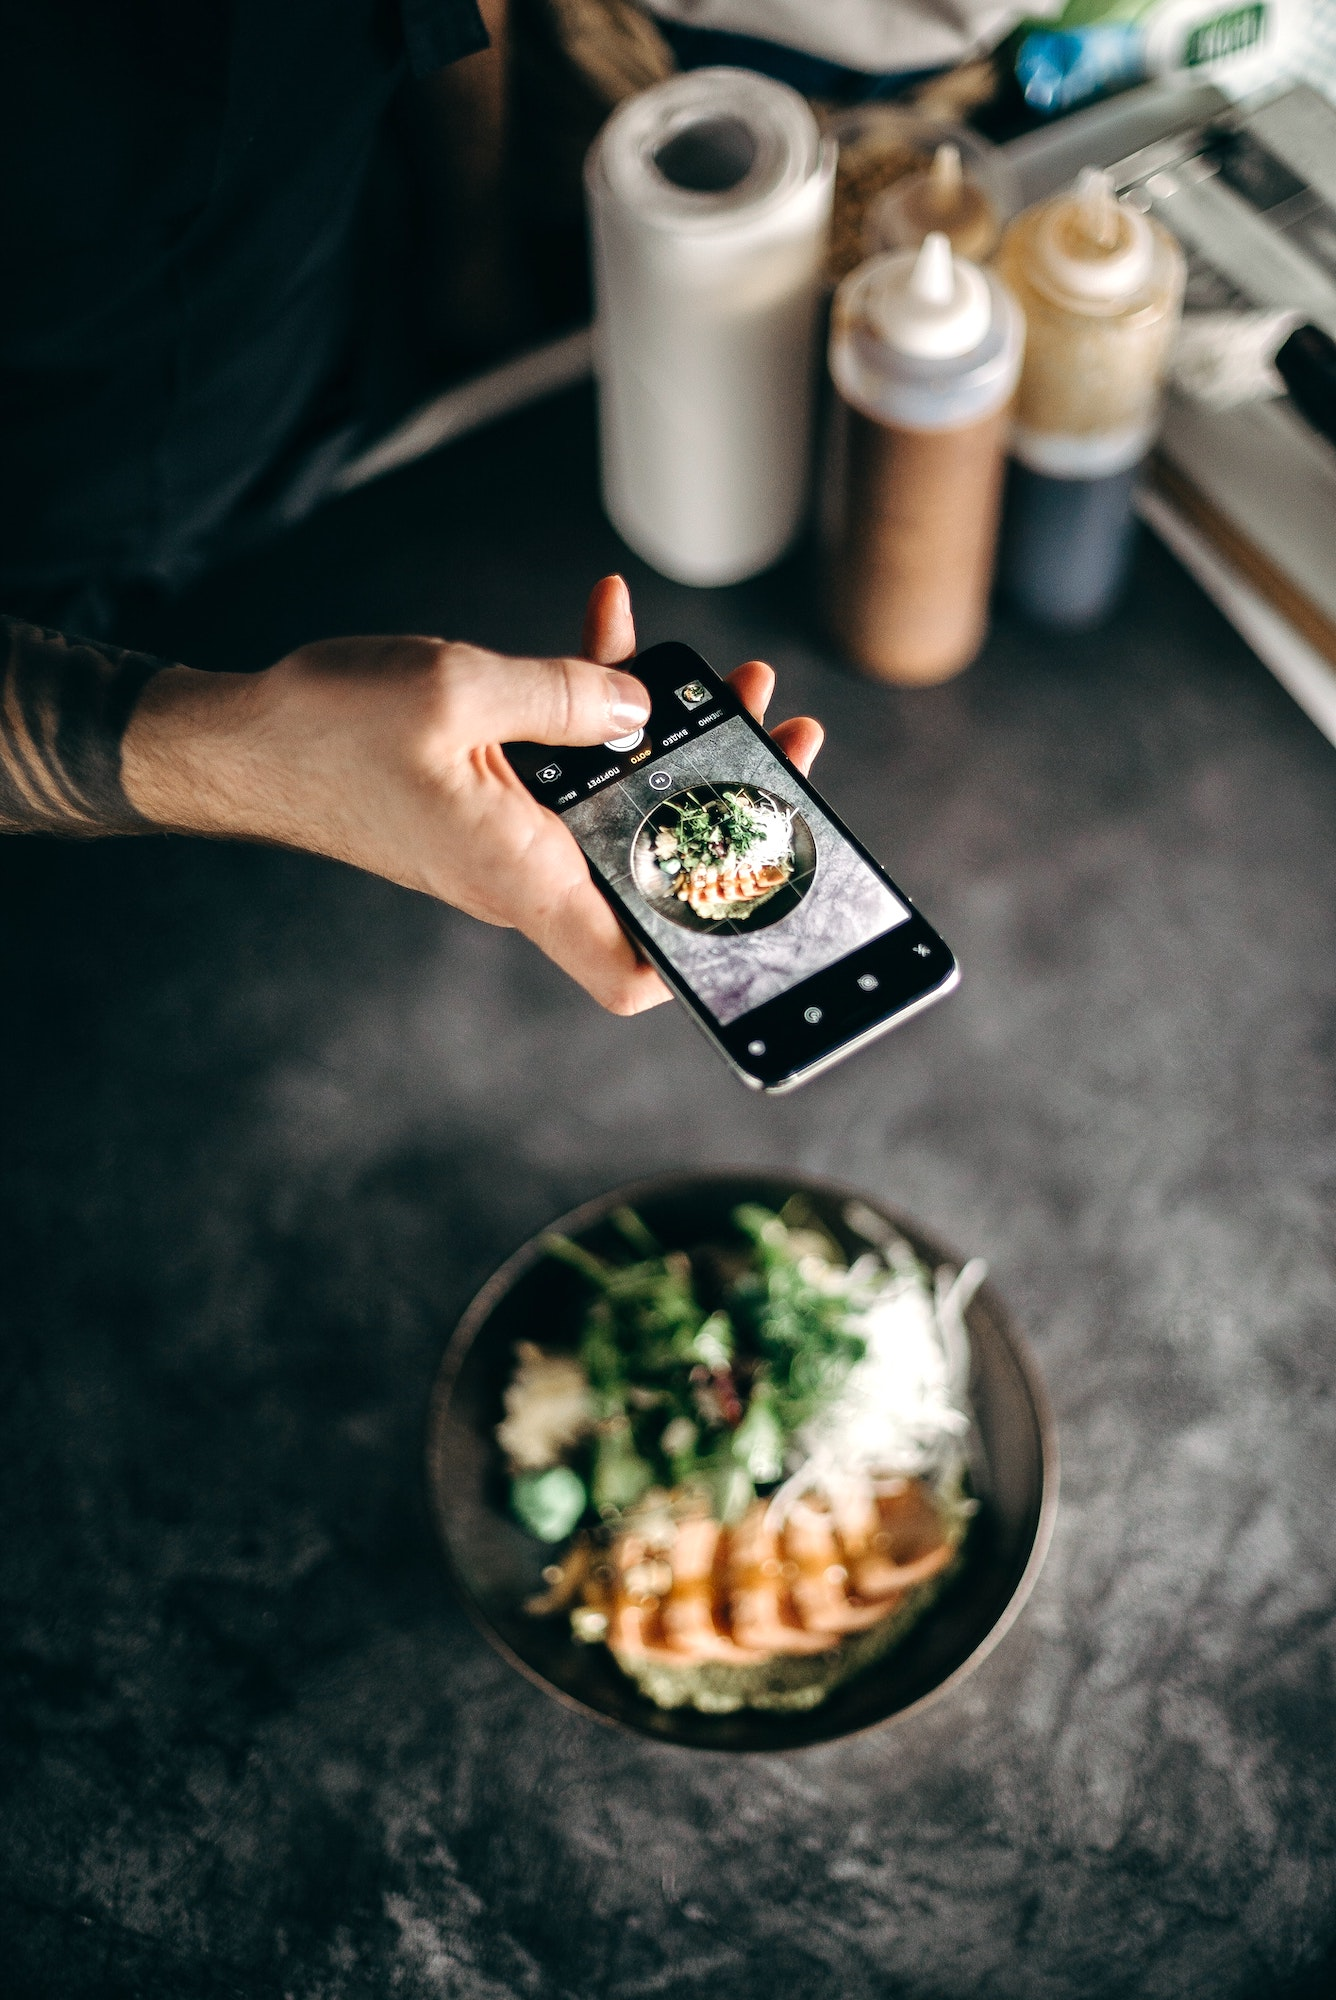 Instagram virality is any food business owner's dream